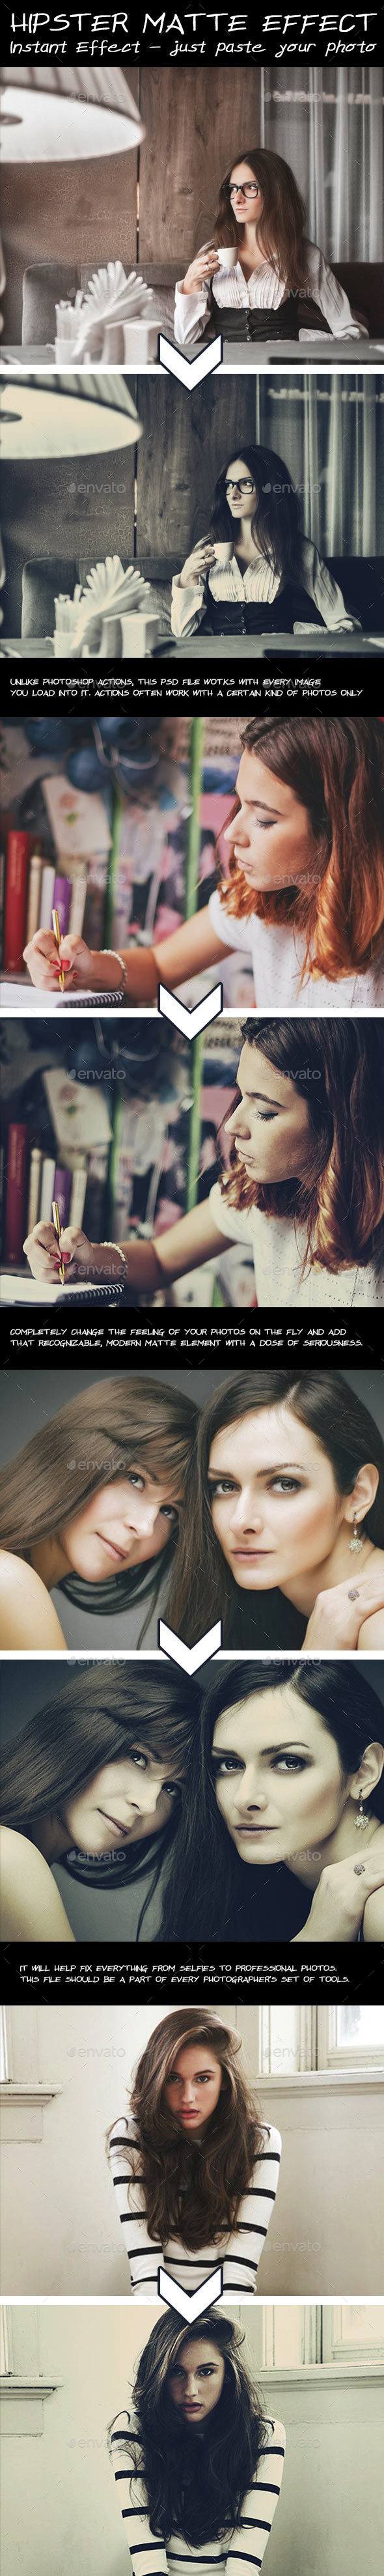 Hipster Matte Effect - Photo Templates Graphics